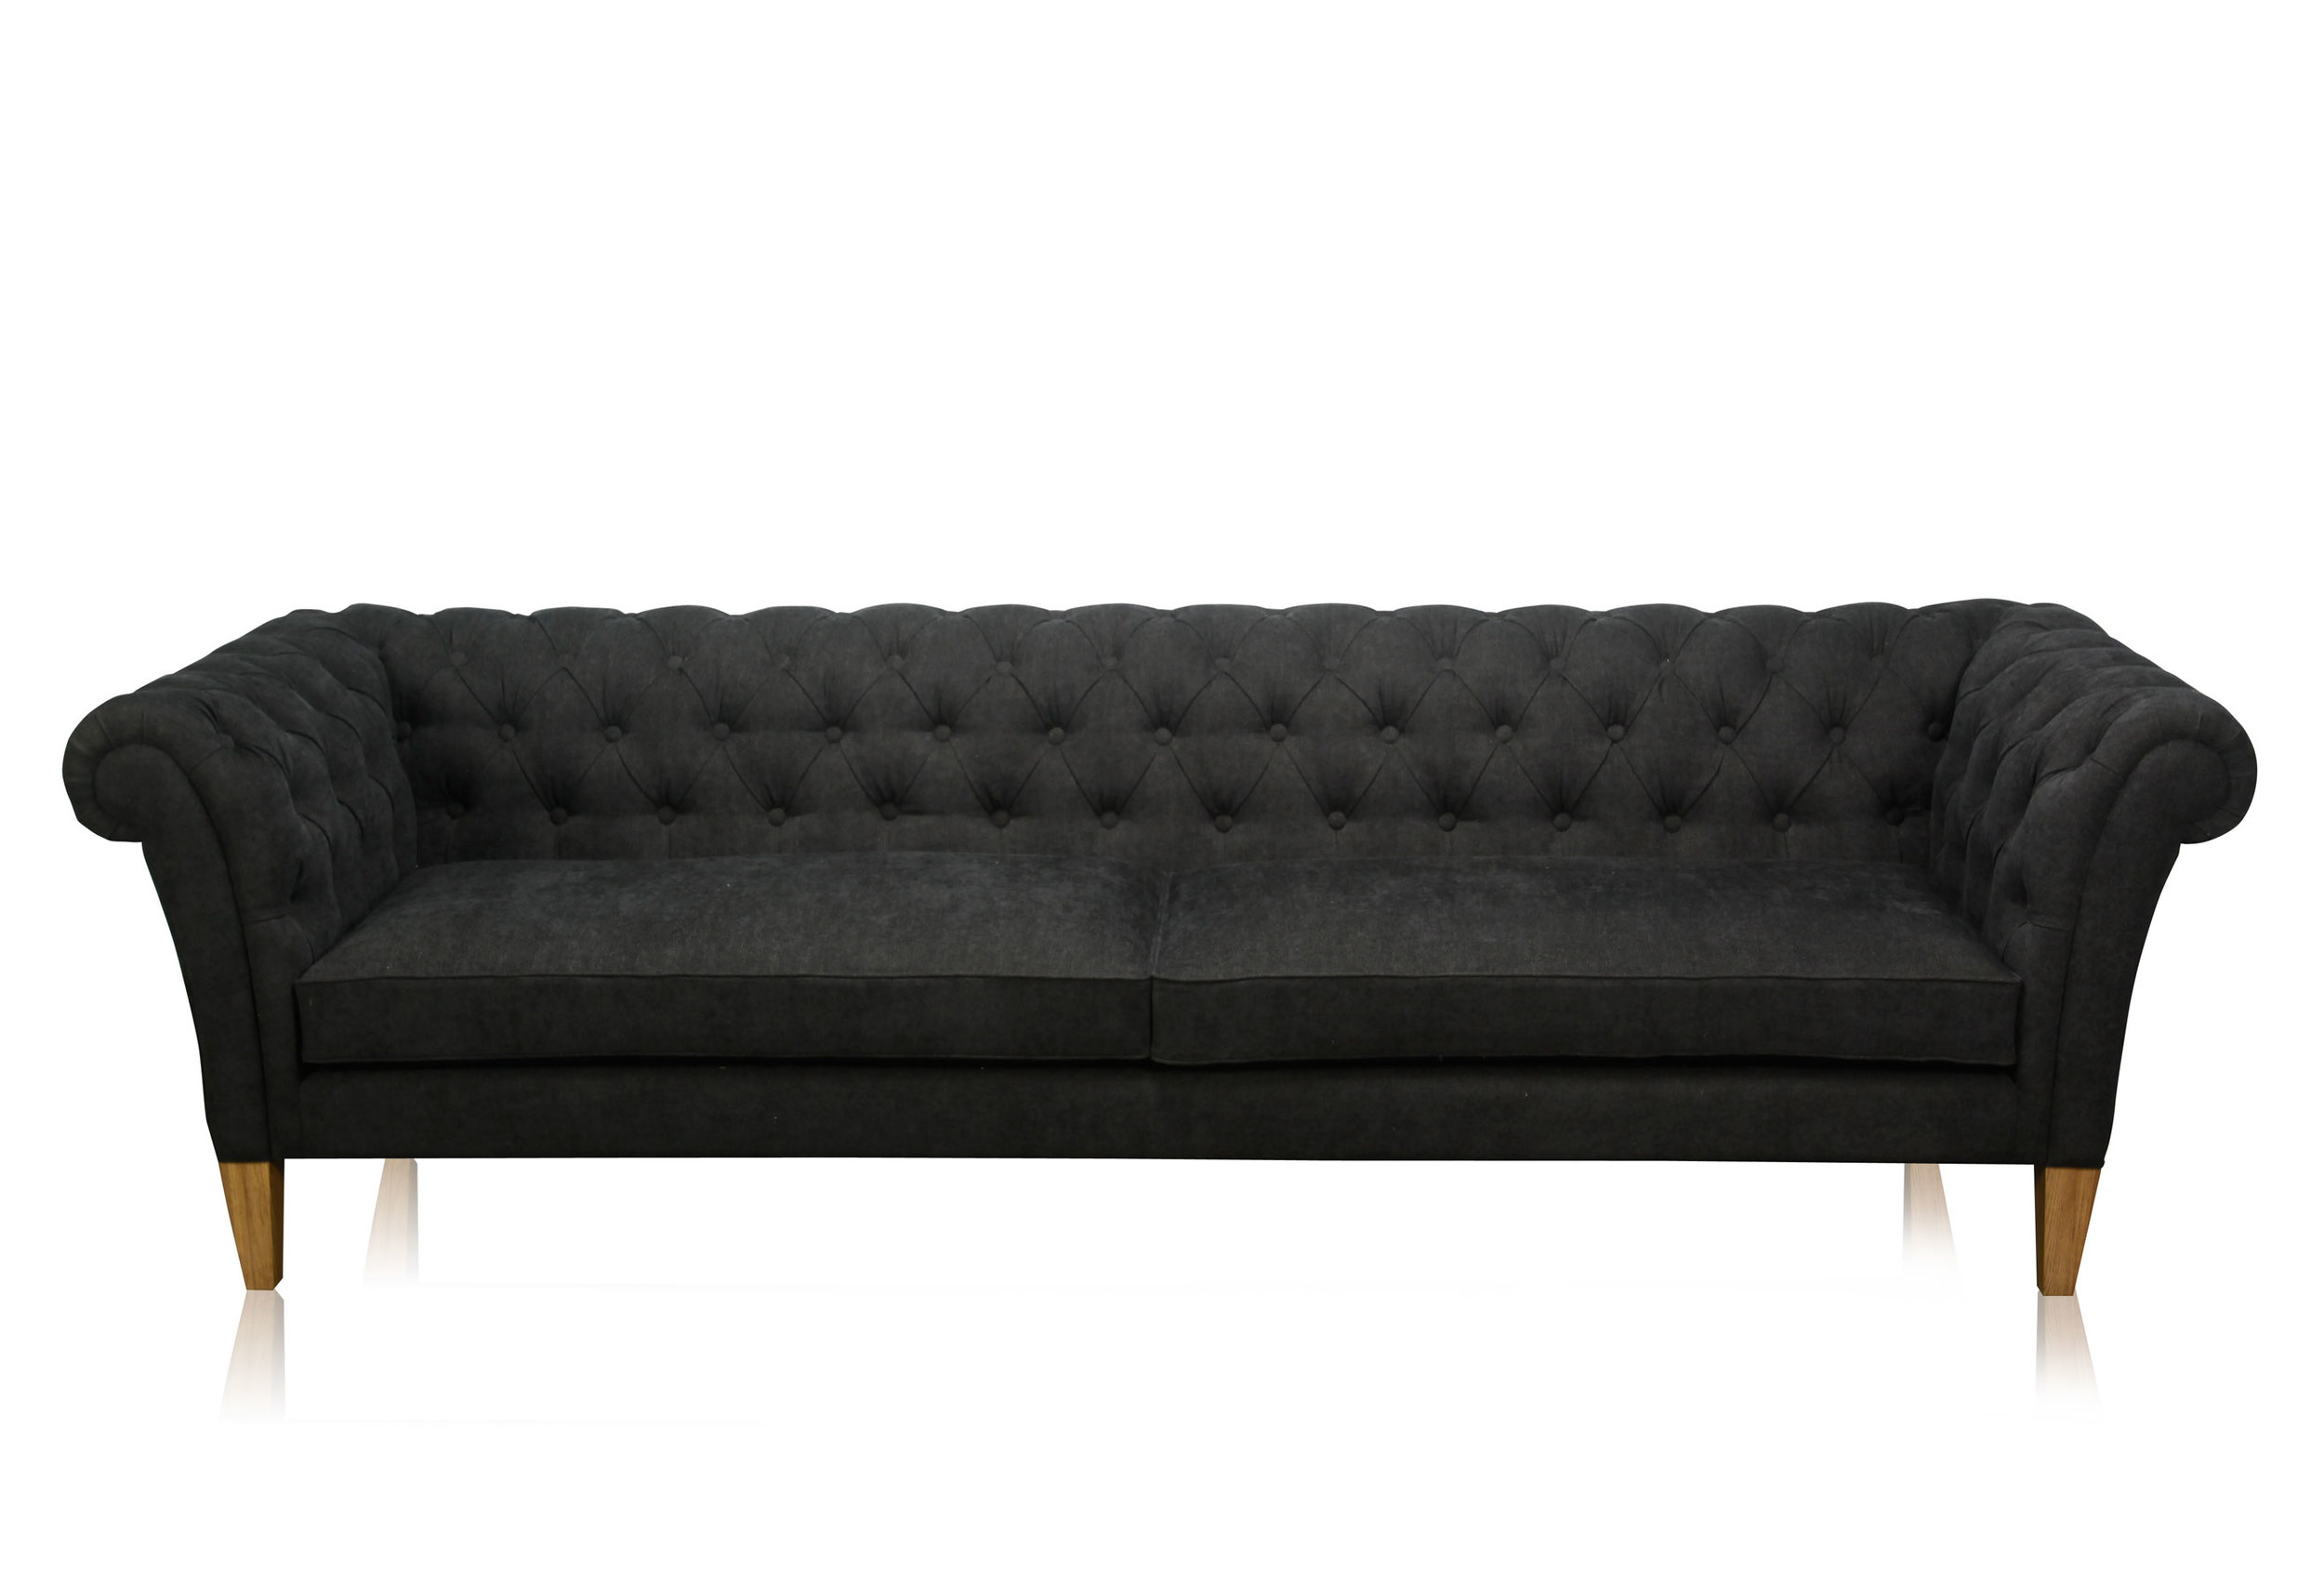 BROOME CHESTERFIELD SOFA